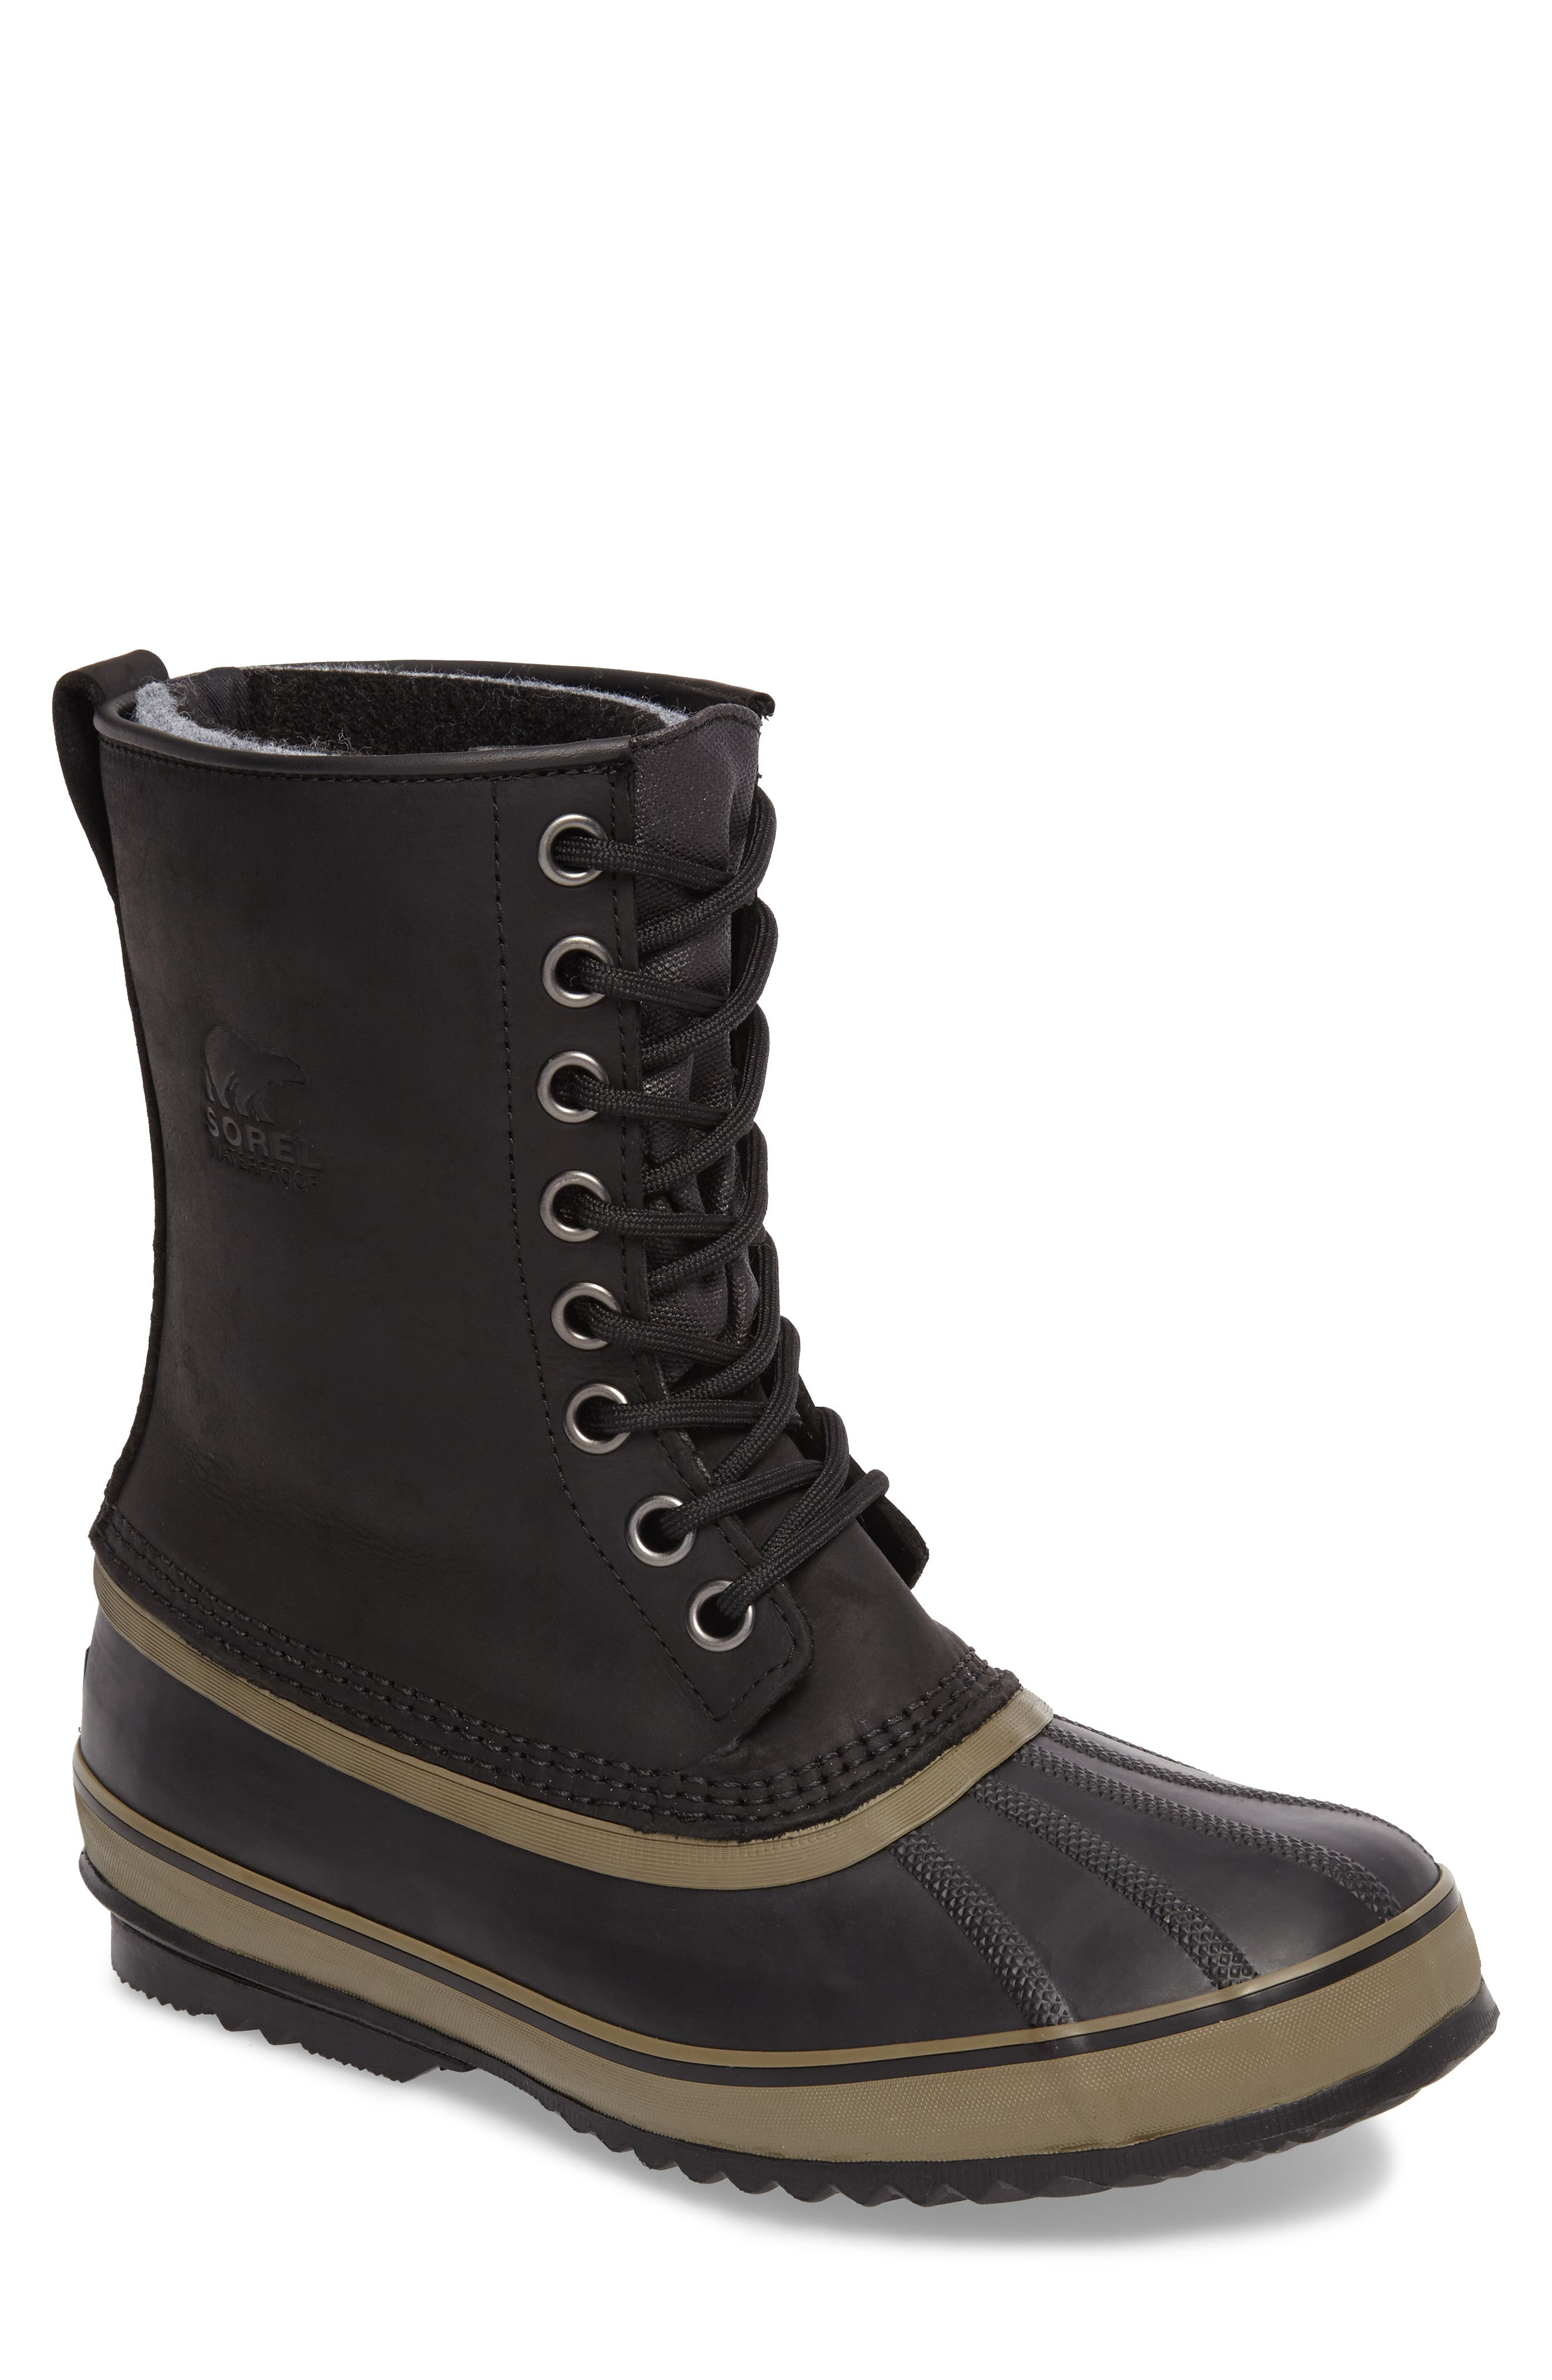 Main Image - SOREL '1964 Premium T' Snow Boot